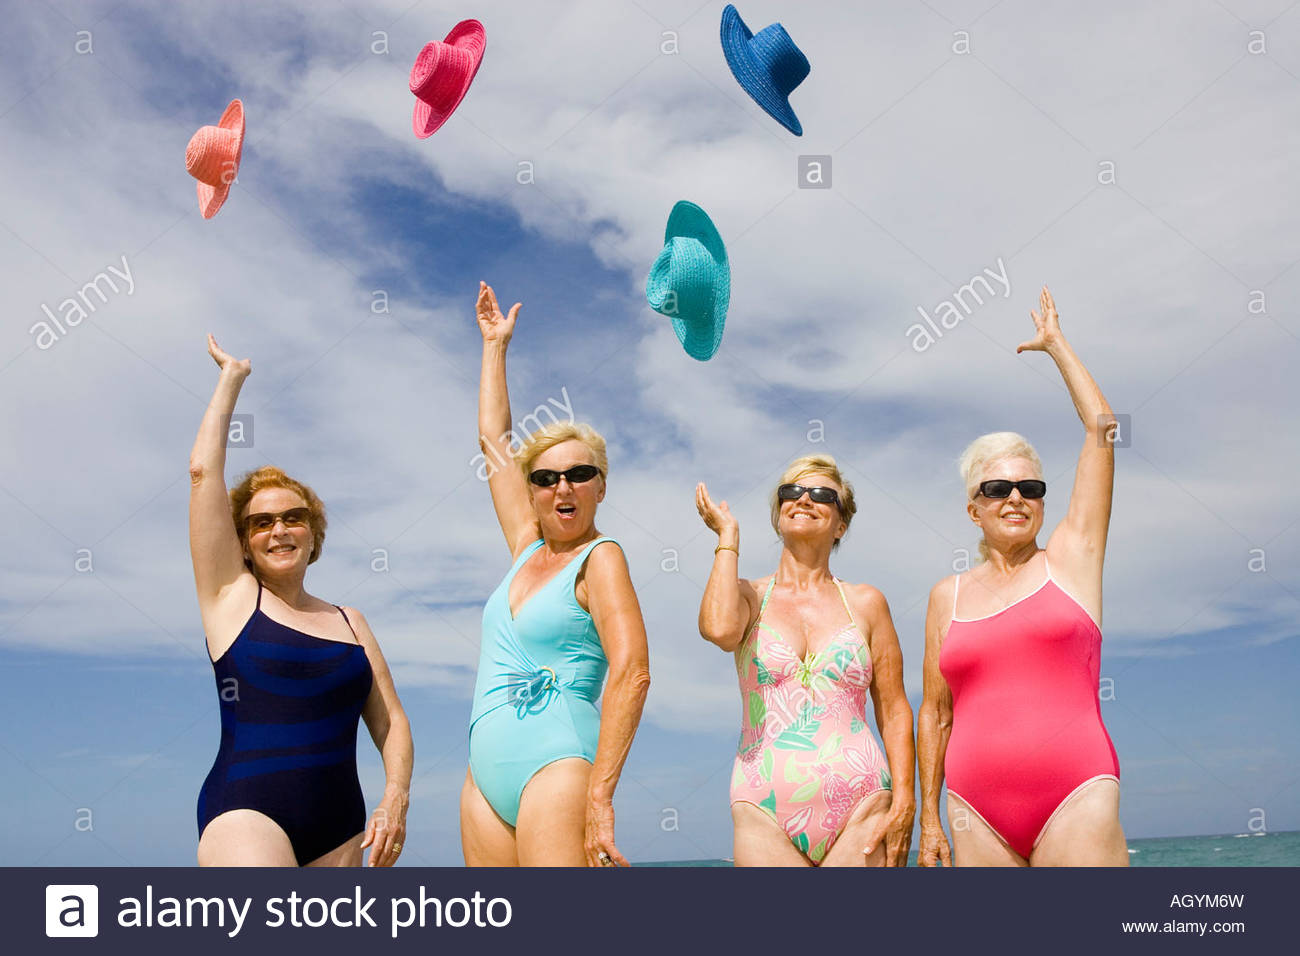 Group of senior women in bathing suits tossing hats in air - Stock Image